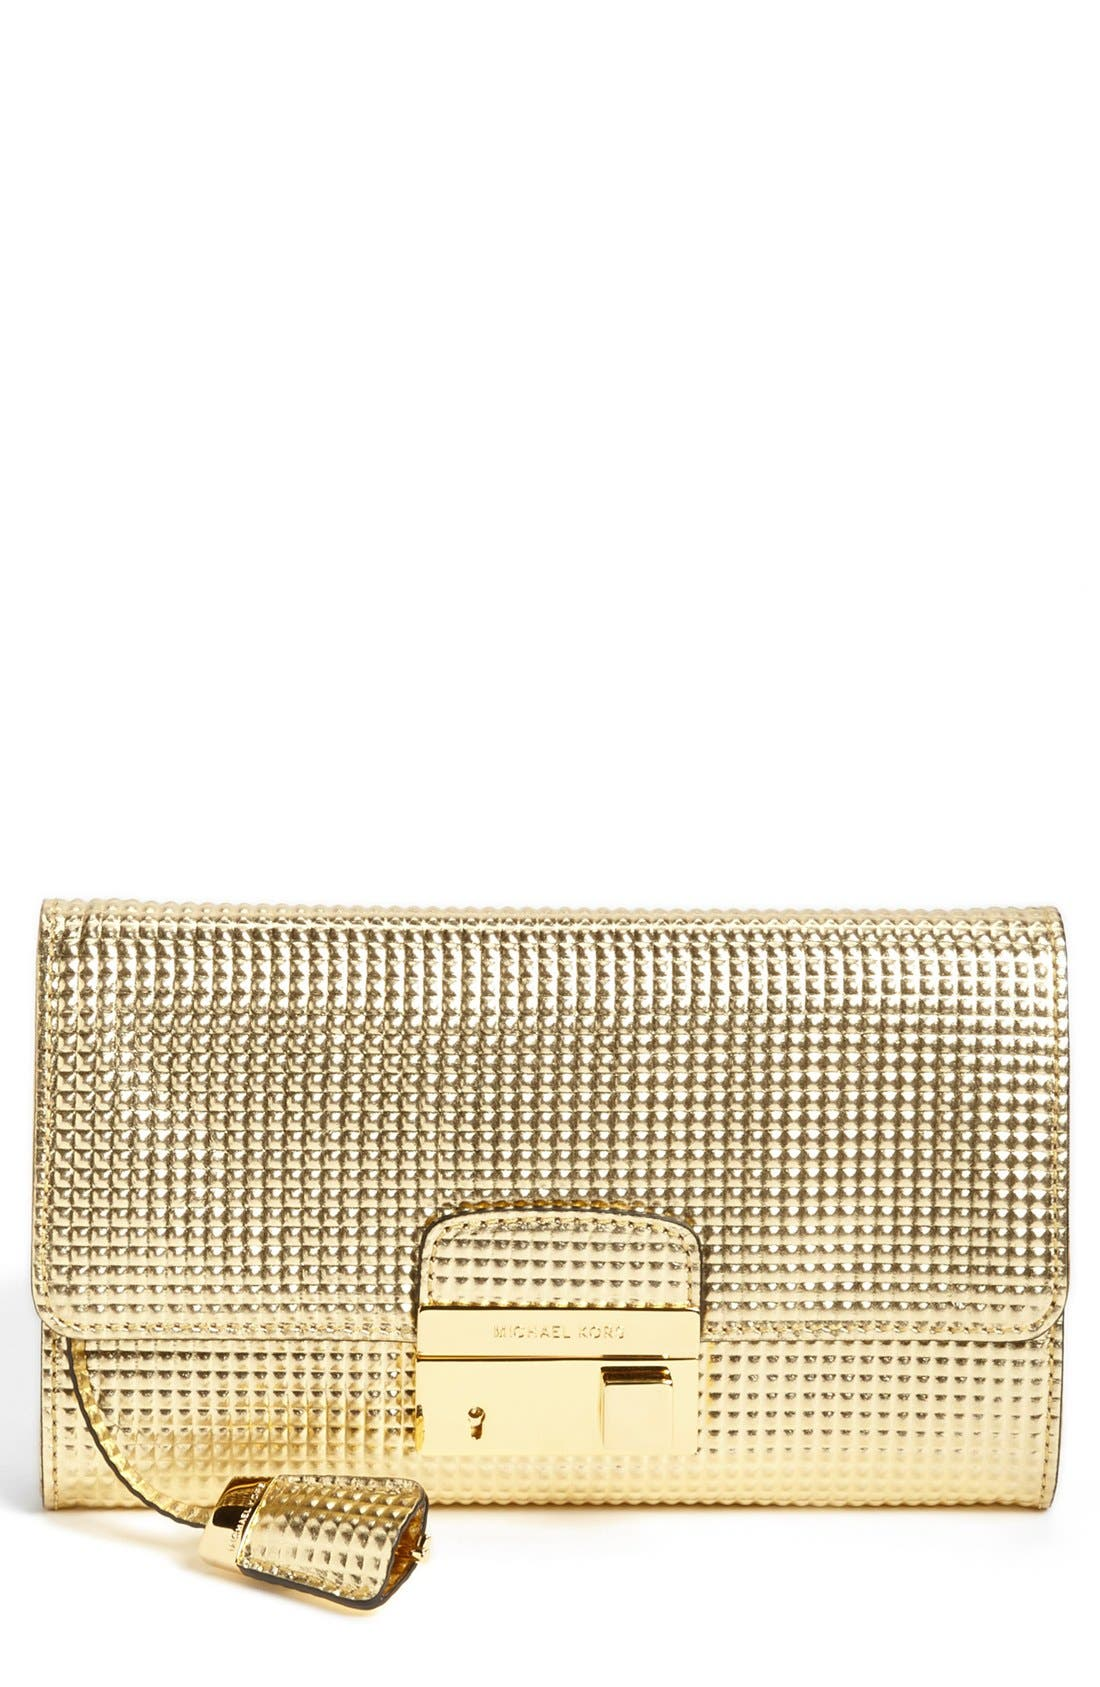 Alternate Image 1 Selected - Michael Kors 'Gia' Clutch